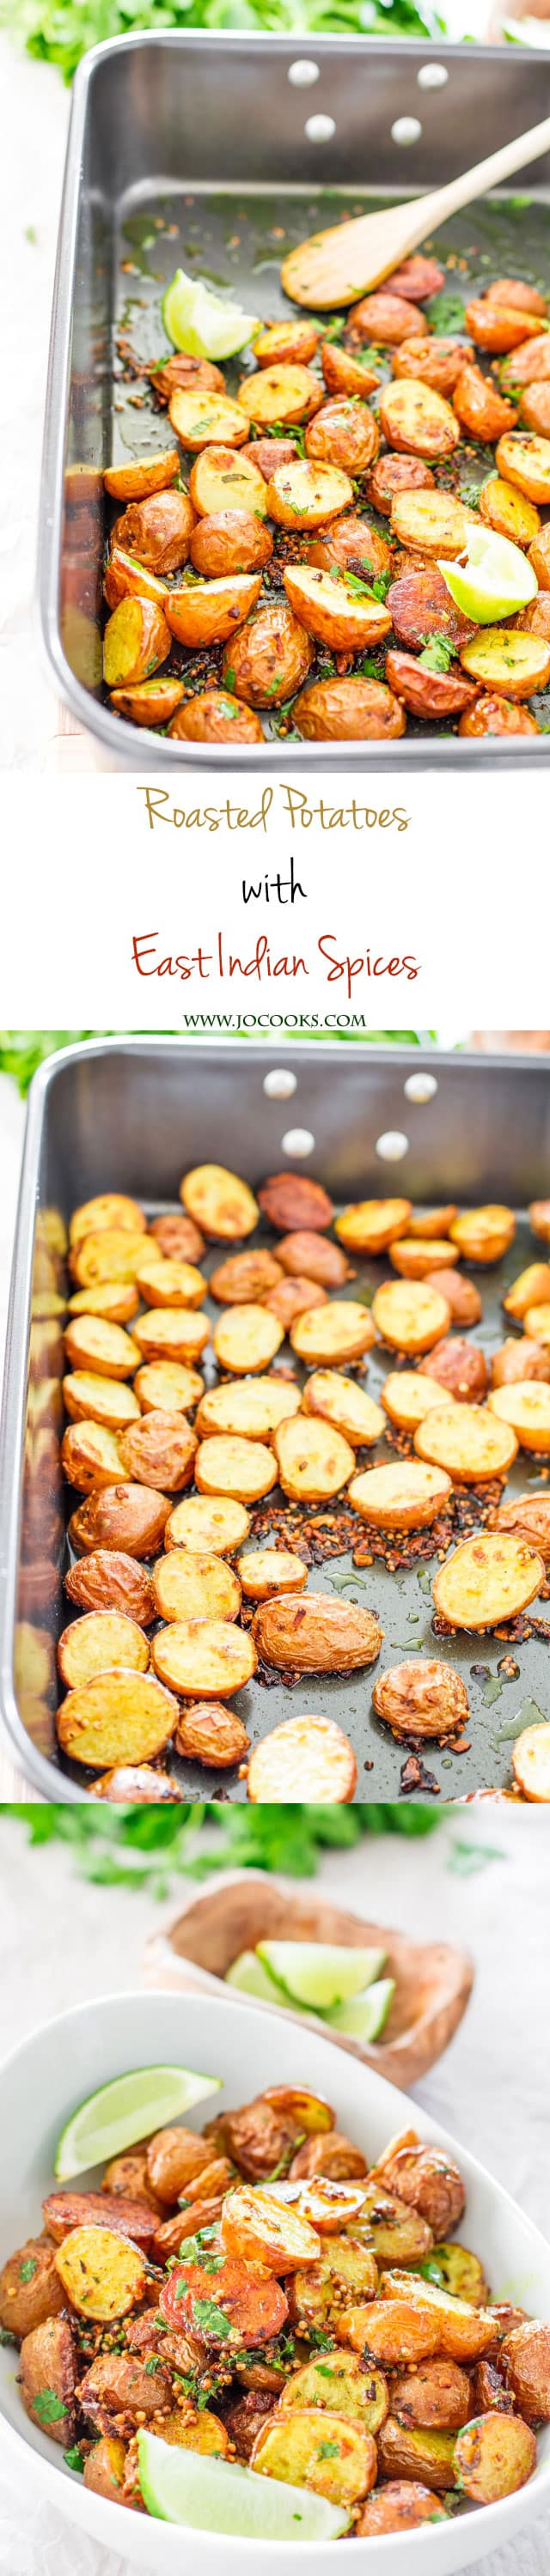 roasted-potatoes-with-east-indian-spices-collage